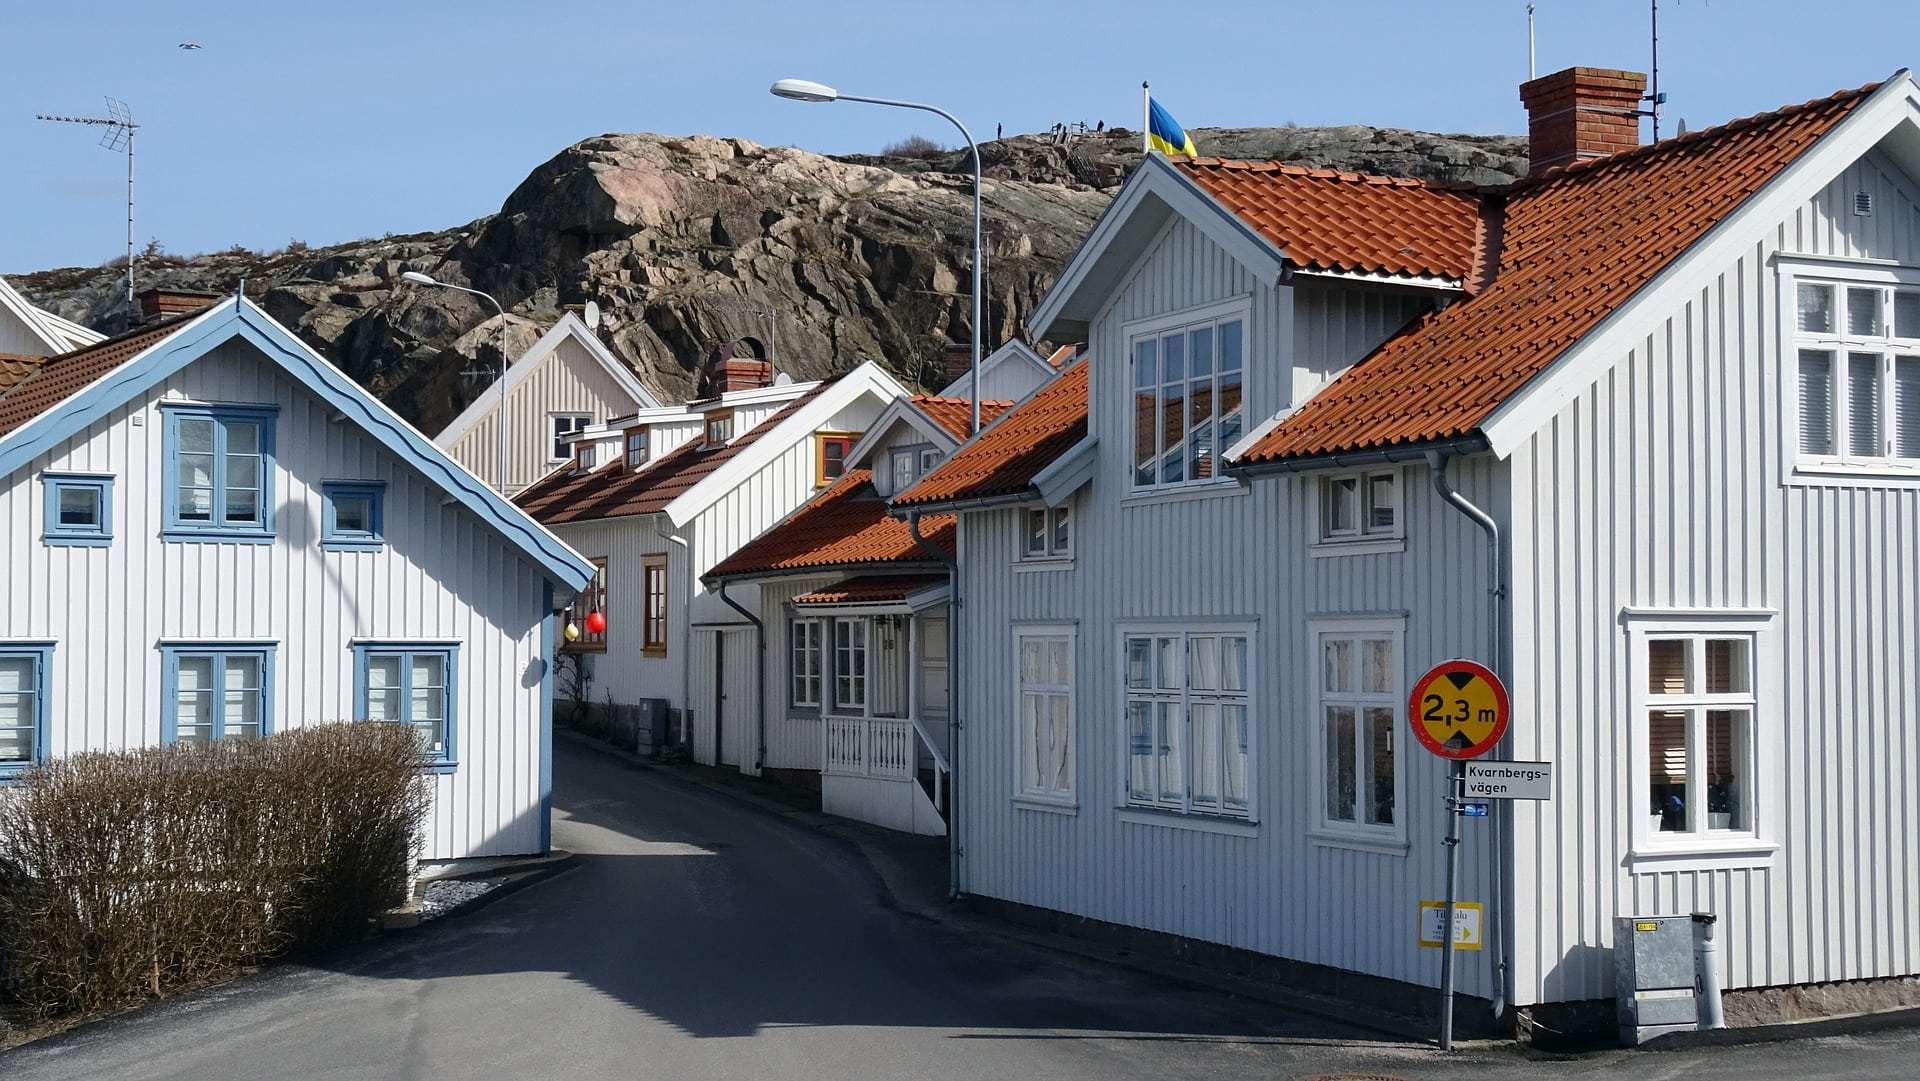 Fjällbacka is a very picturesque harbor town, perfect for taking beautiful pictures.